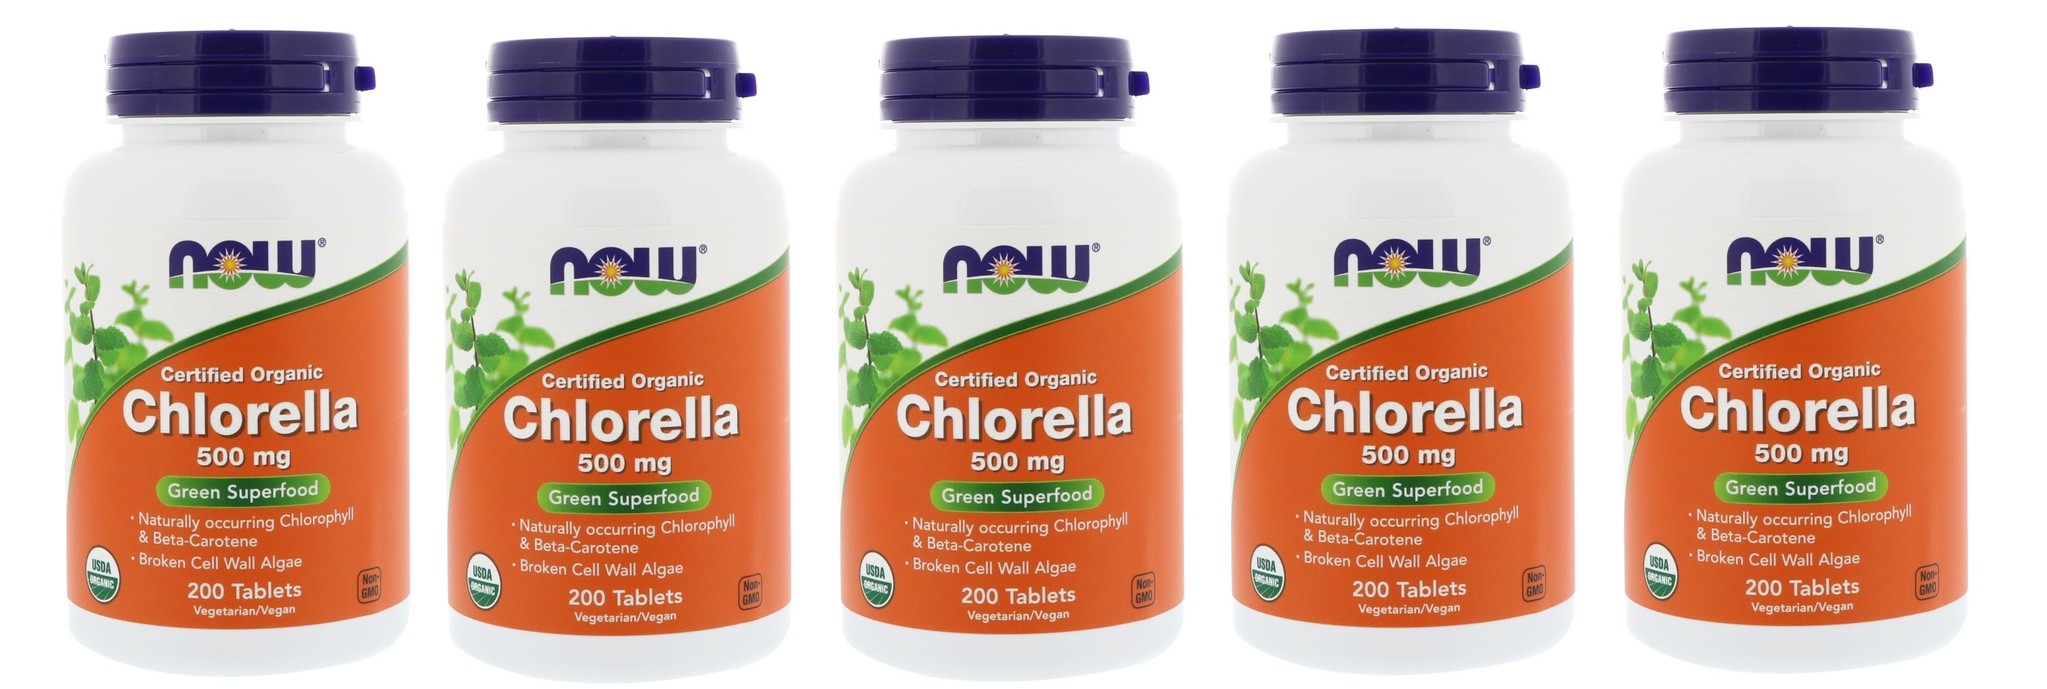 Now Foods Certified Organic Chlorella, 500 Mg, 200 Tablets, 5-pack